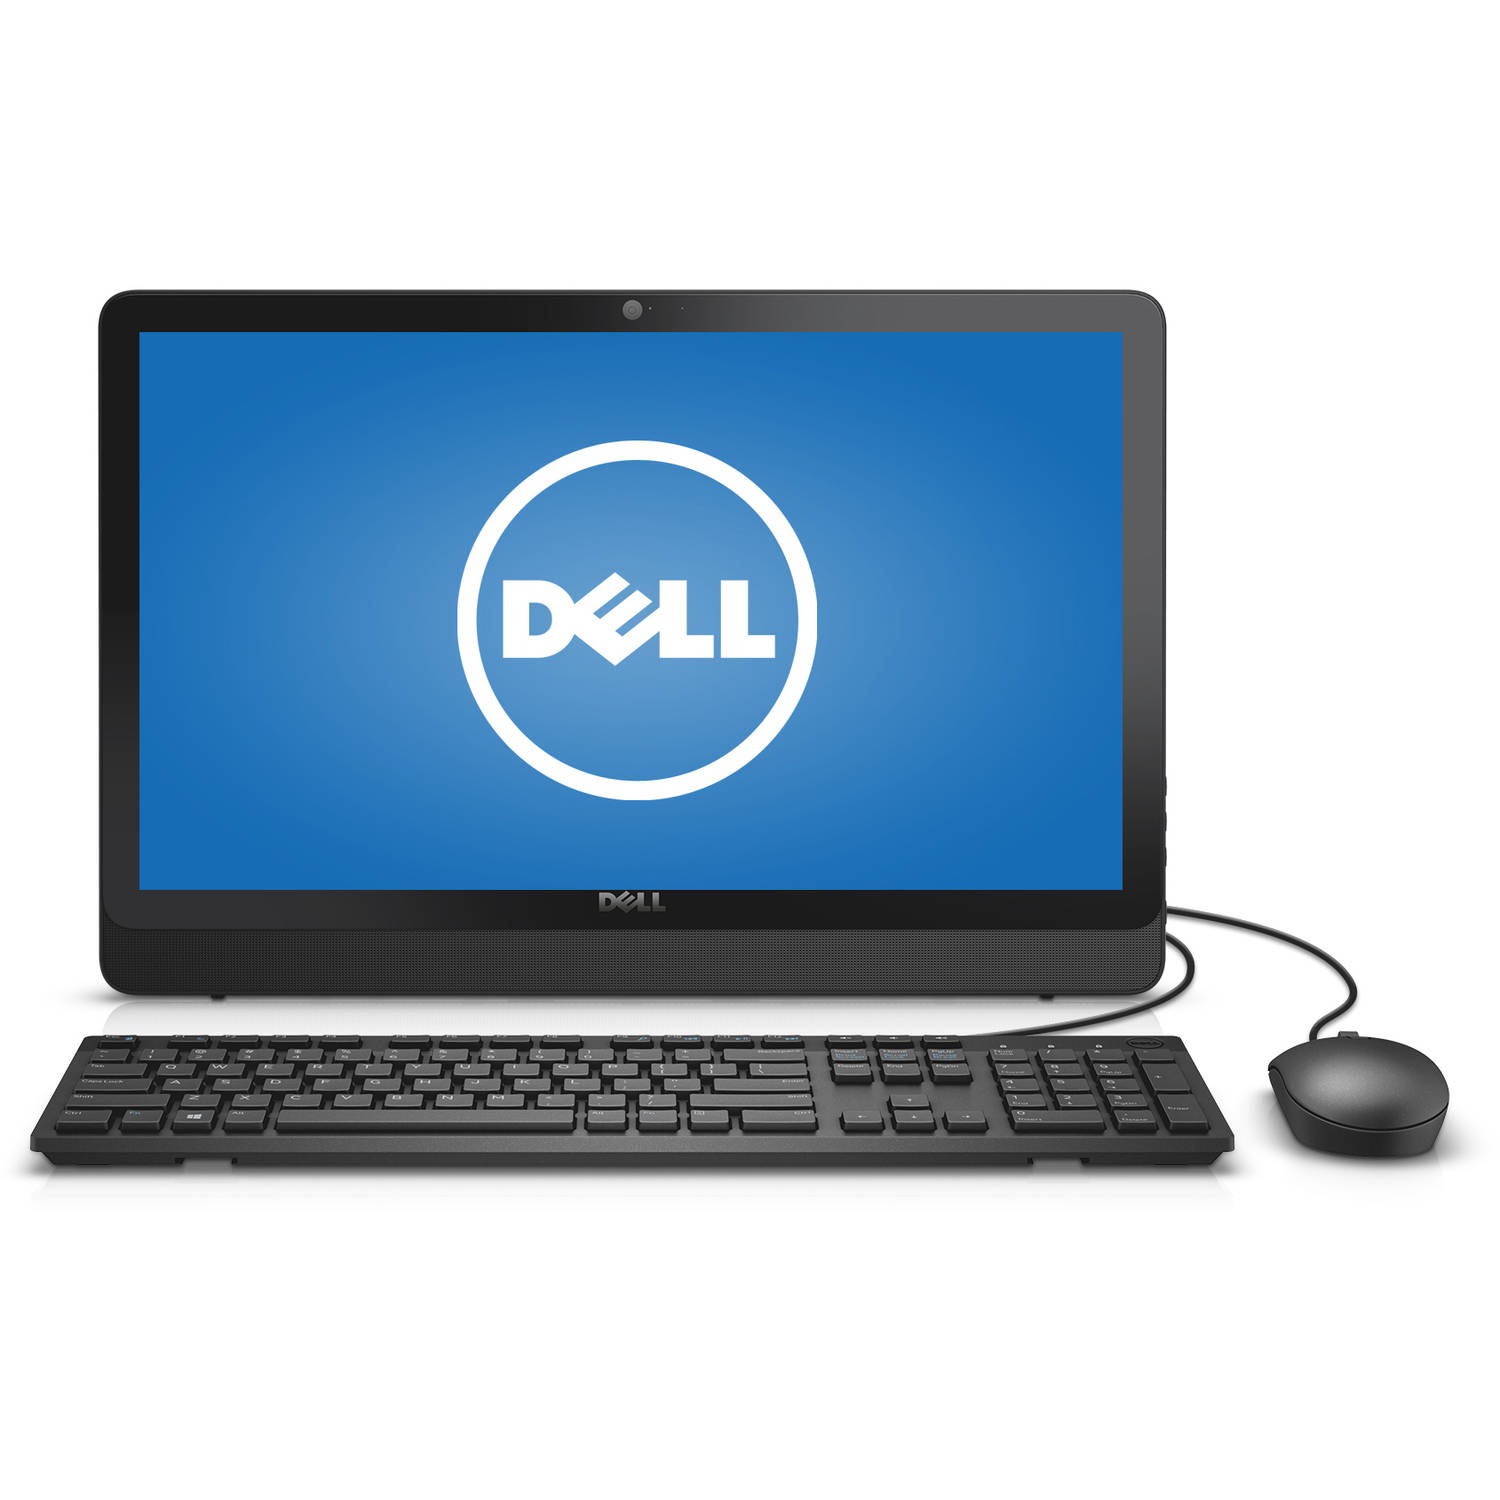 """Dell Black Bezel Inspiron 3052 All-In-One Desktop PC with Intel Celeron N3150, 4GB Memory, 19.5"""" Monitor, 500GB Hard Drive and Windows 10 Home"""